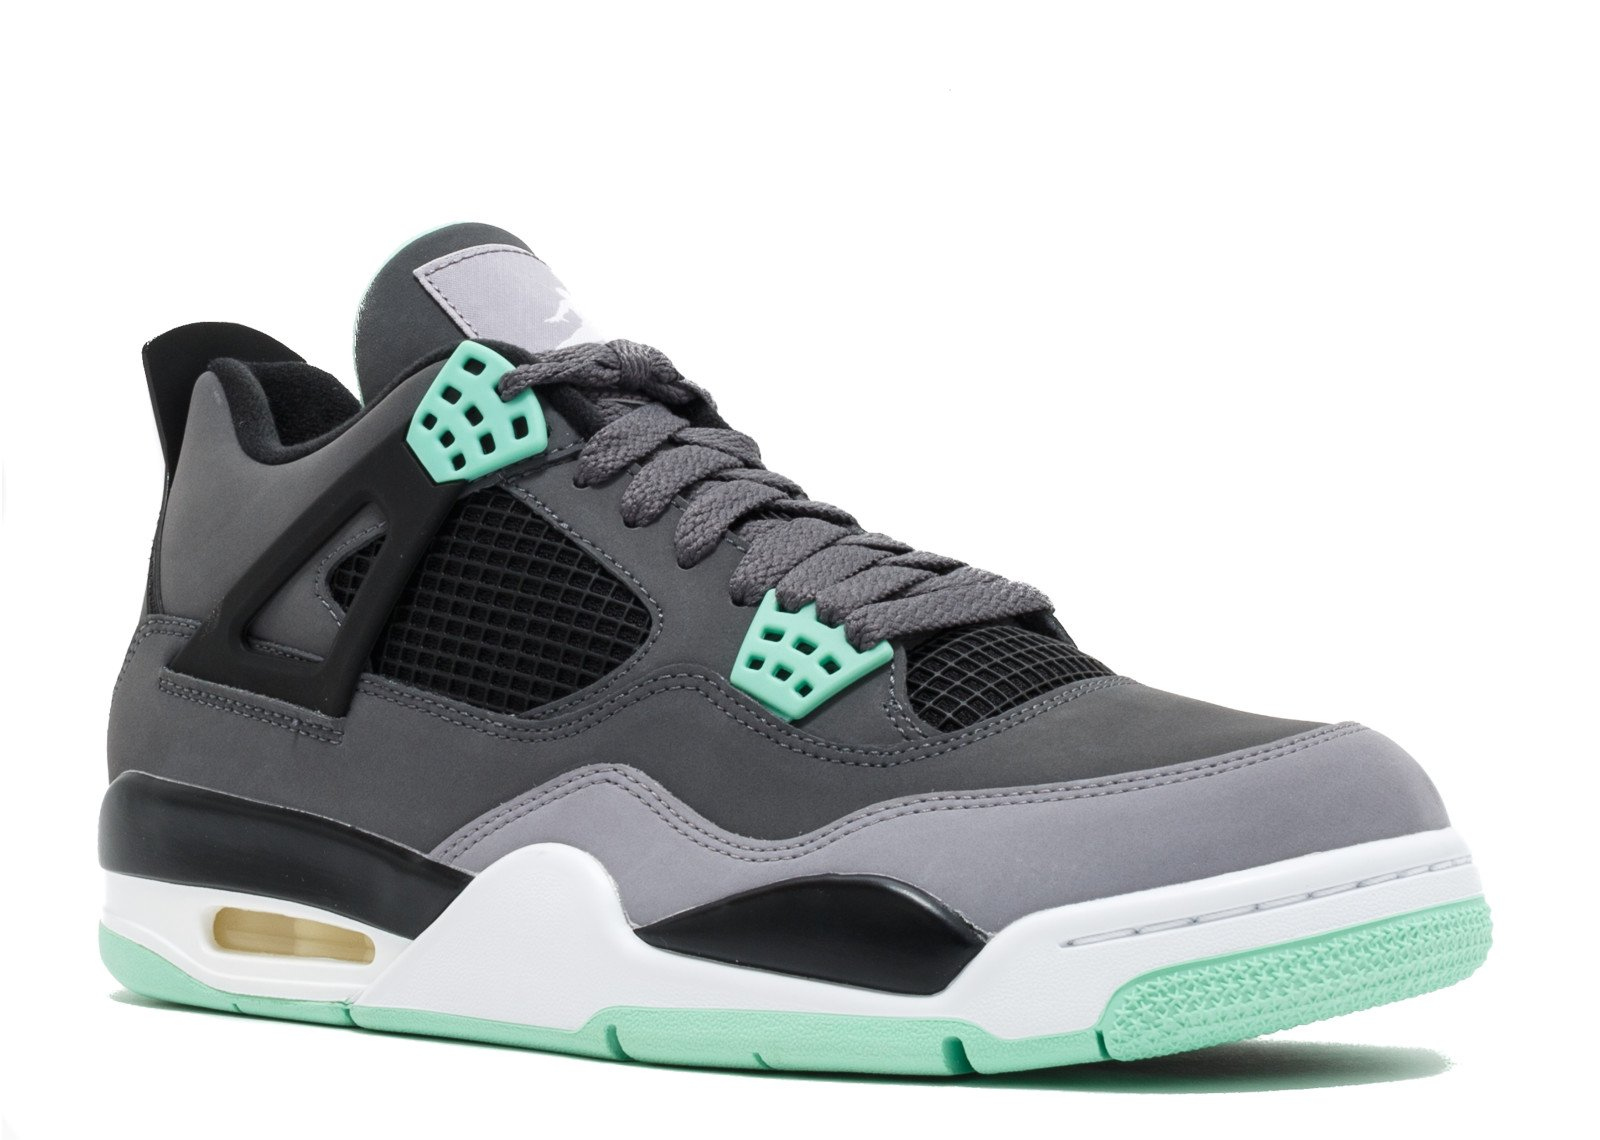 Jordan Air 4 Retro Men's Sneakers Dark Grey/Green Glow-Cement Grey-Black 308497-033-9.5